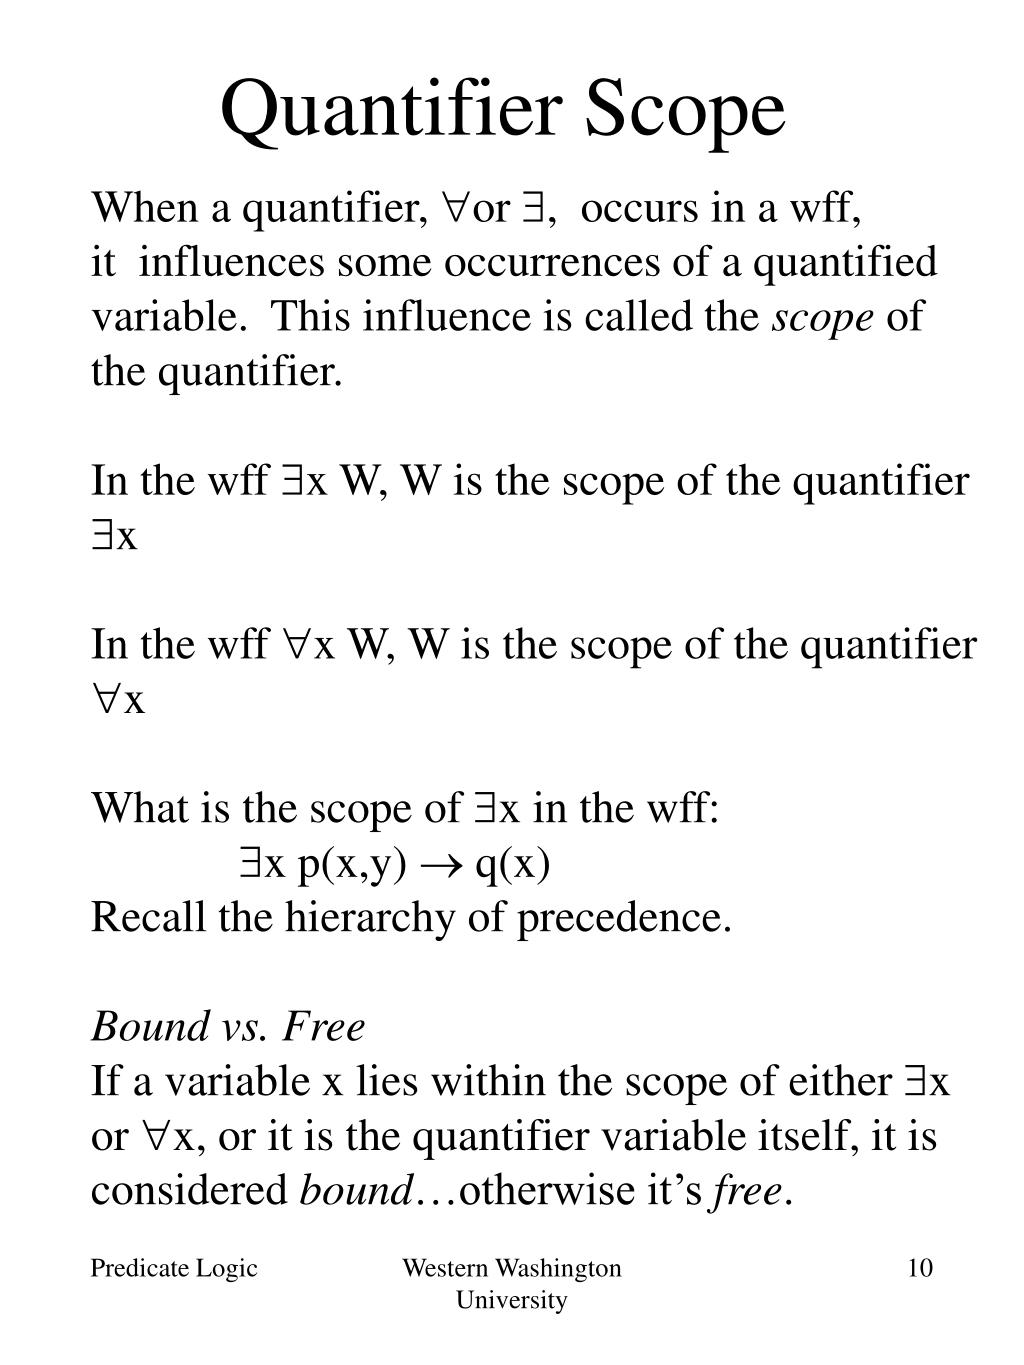 Quantifier Scope